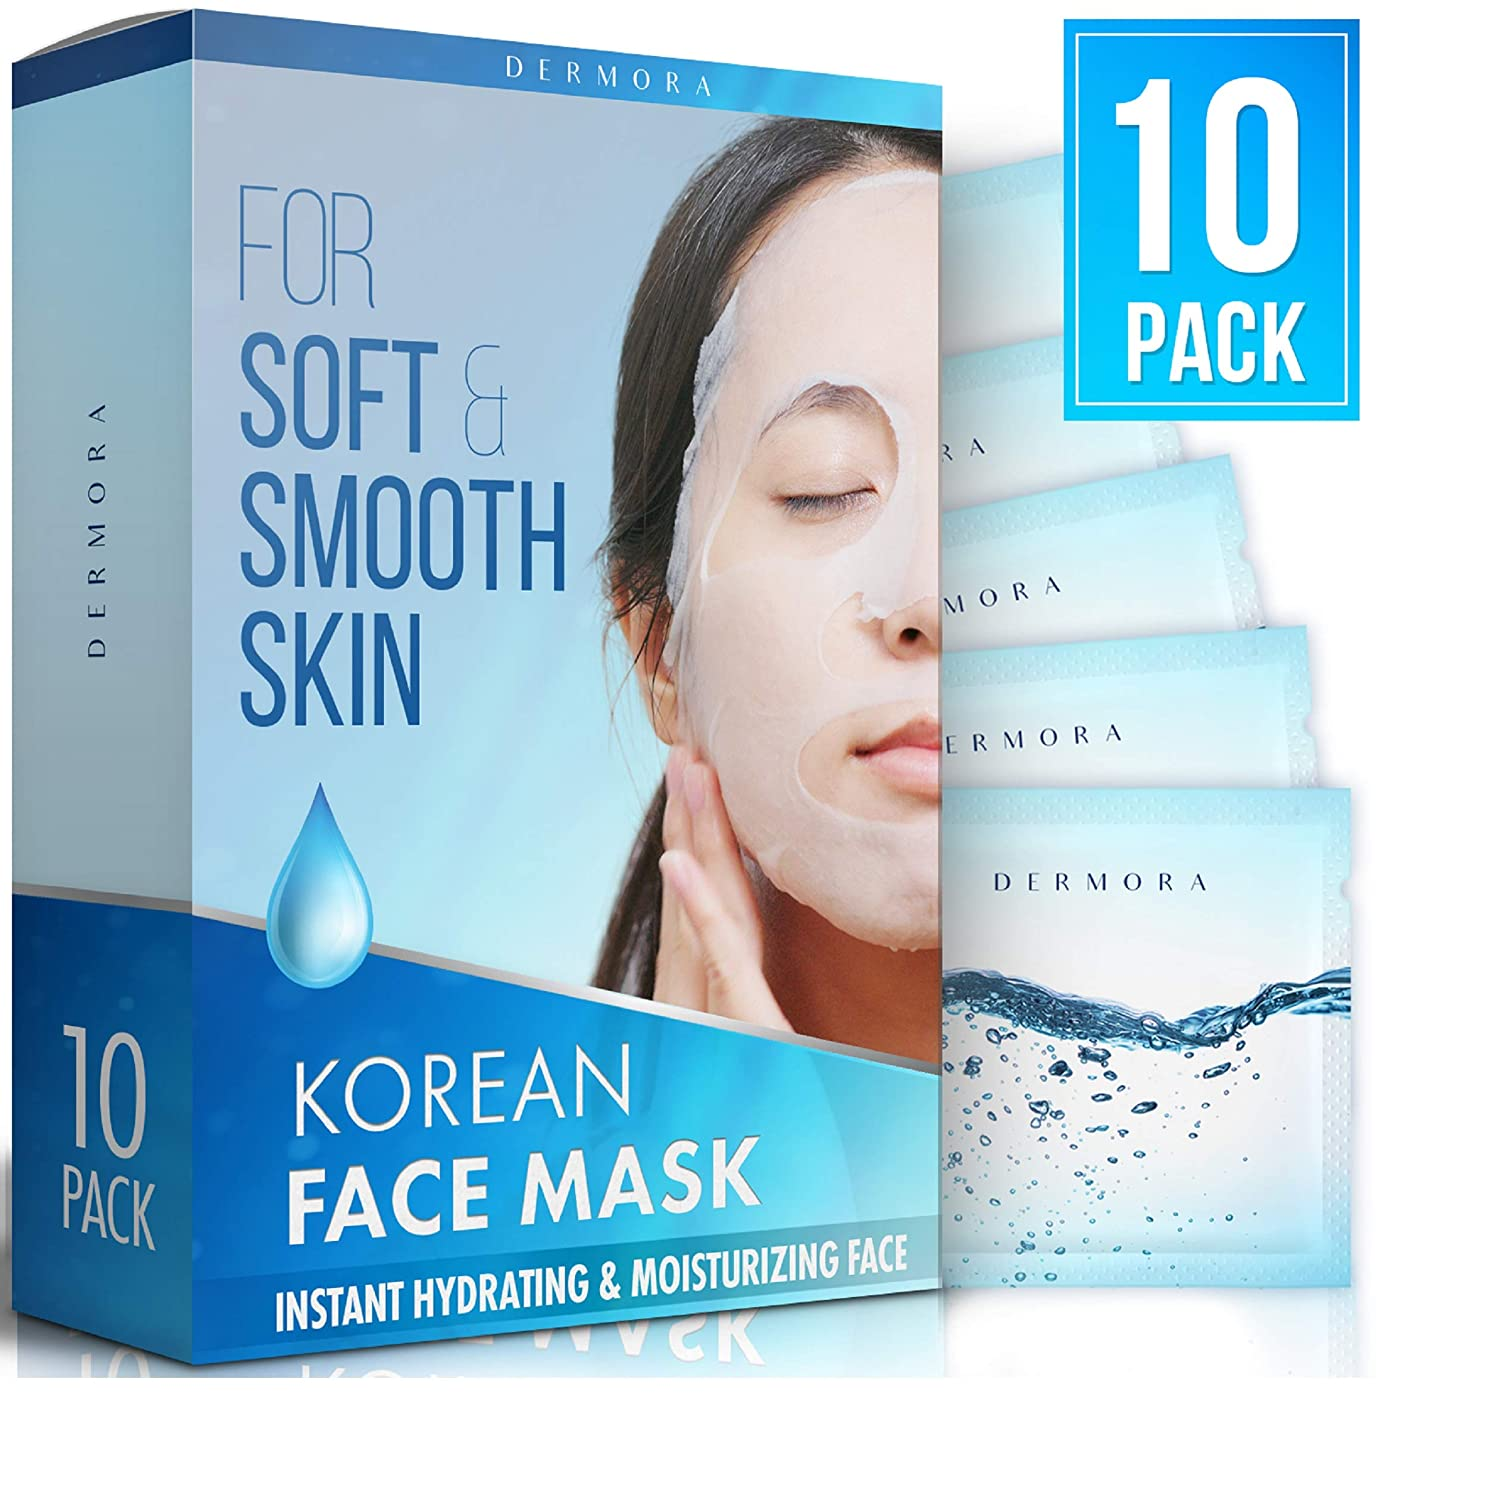 Amazon Com Korean Face Mask Instant Hydrating Moisturizing Face Make Your Skin Smooth Soft And Get Glowing And Bright Face 10 Pack With Snail Secretion Filtrate